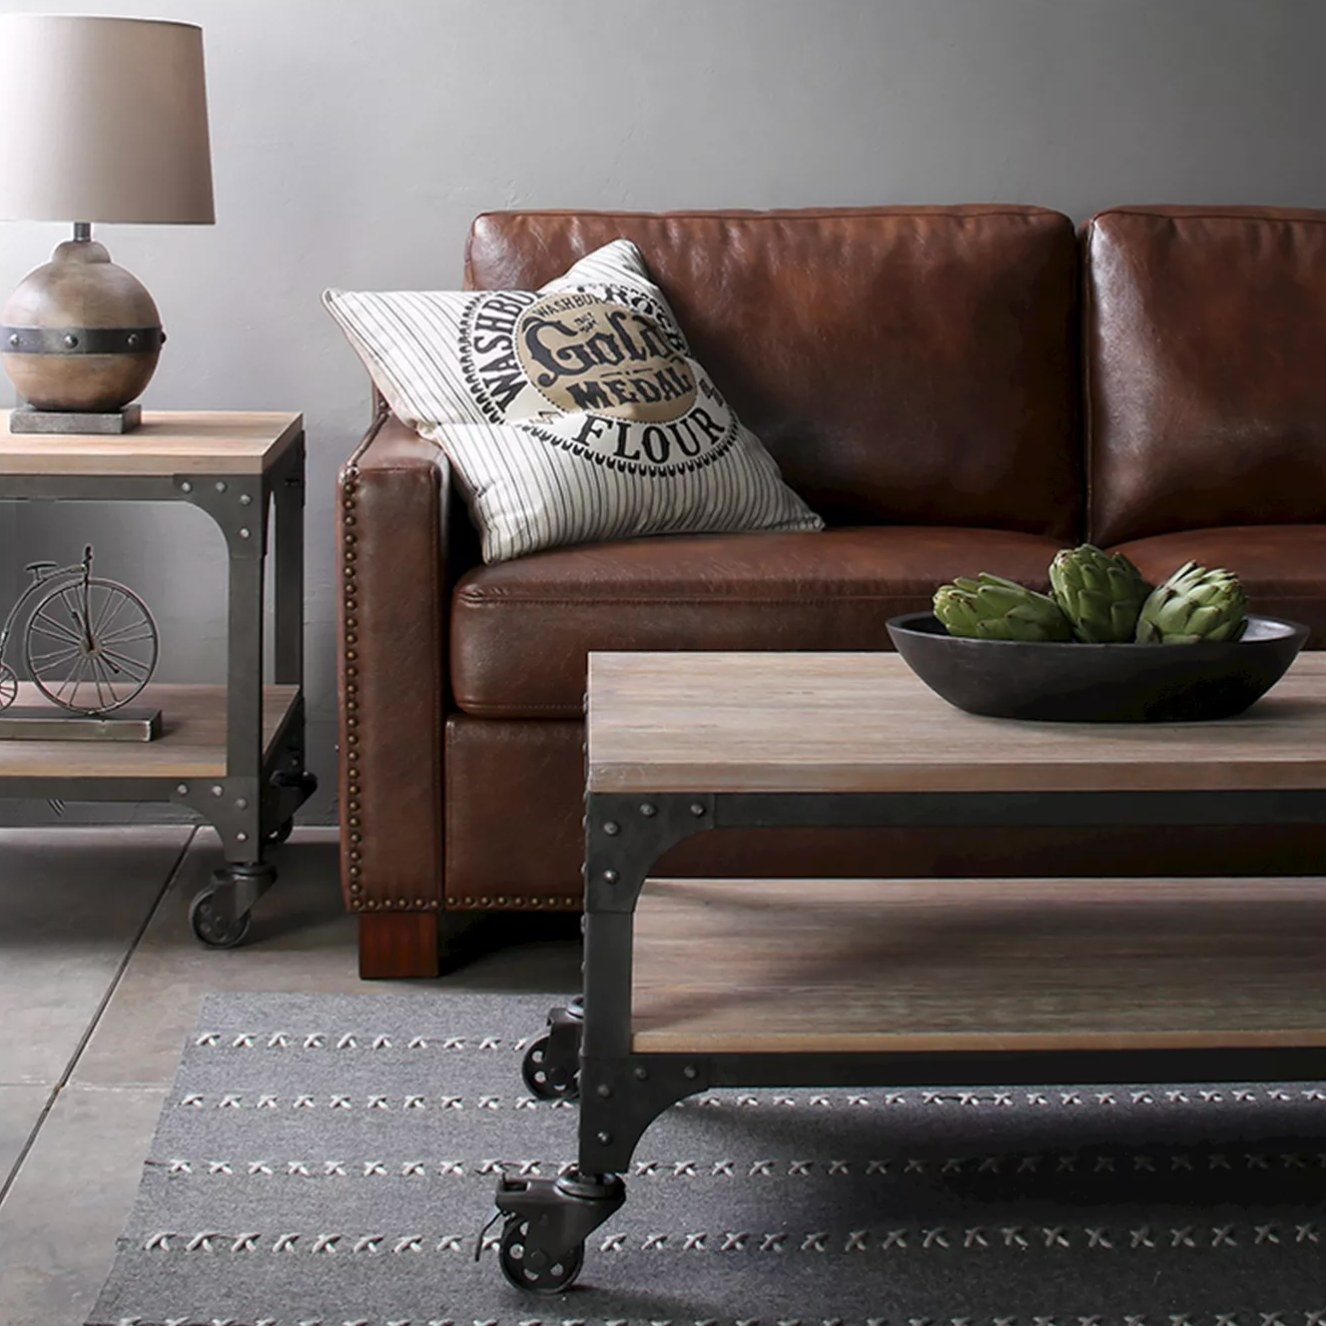 The wood coffee table in weathered gray